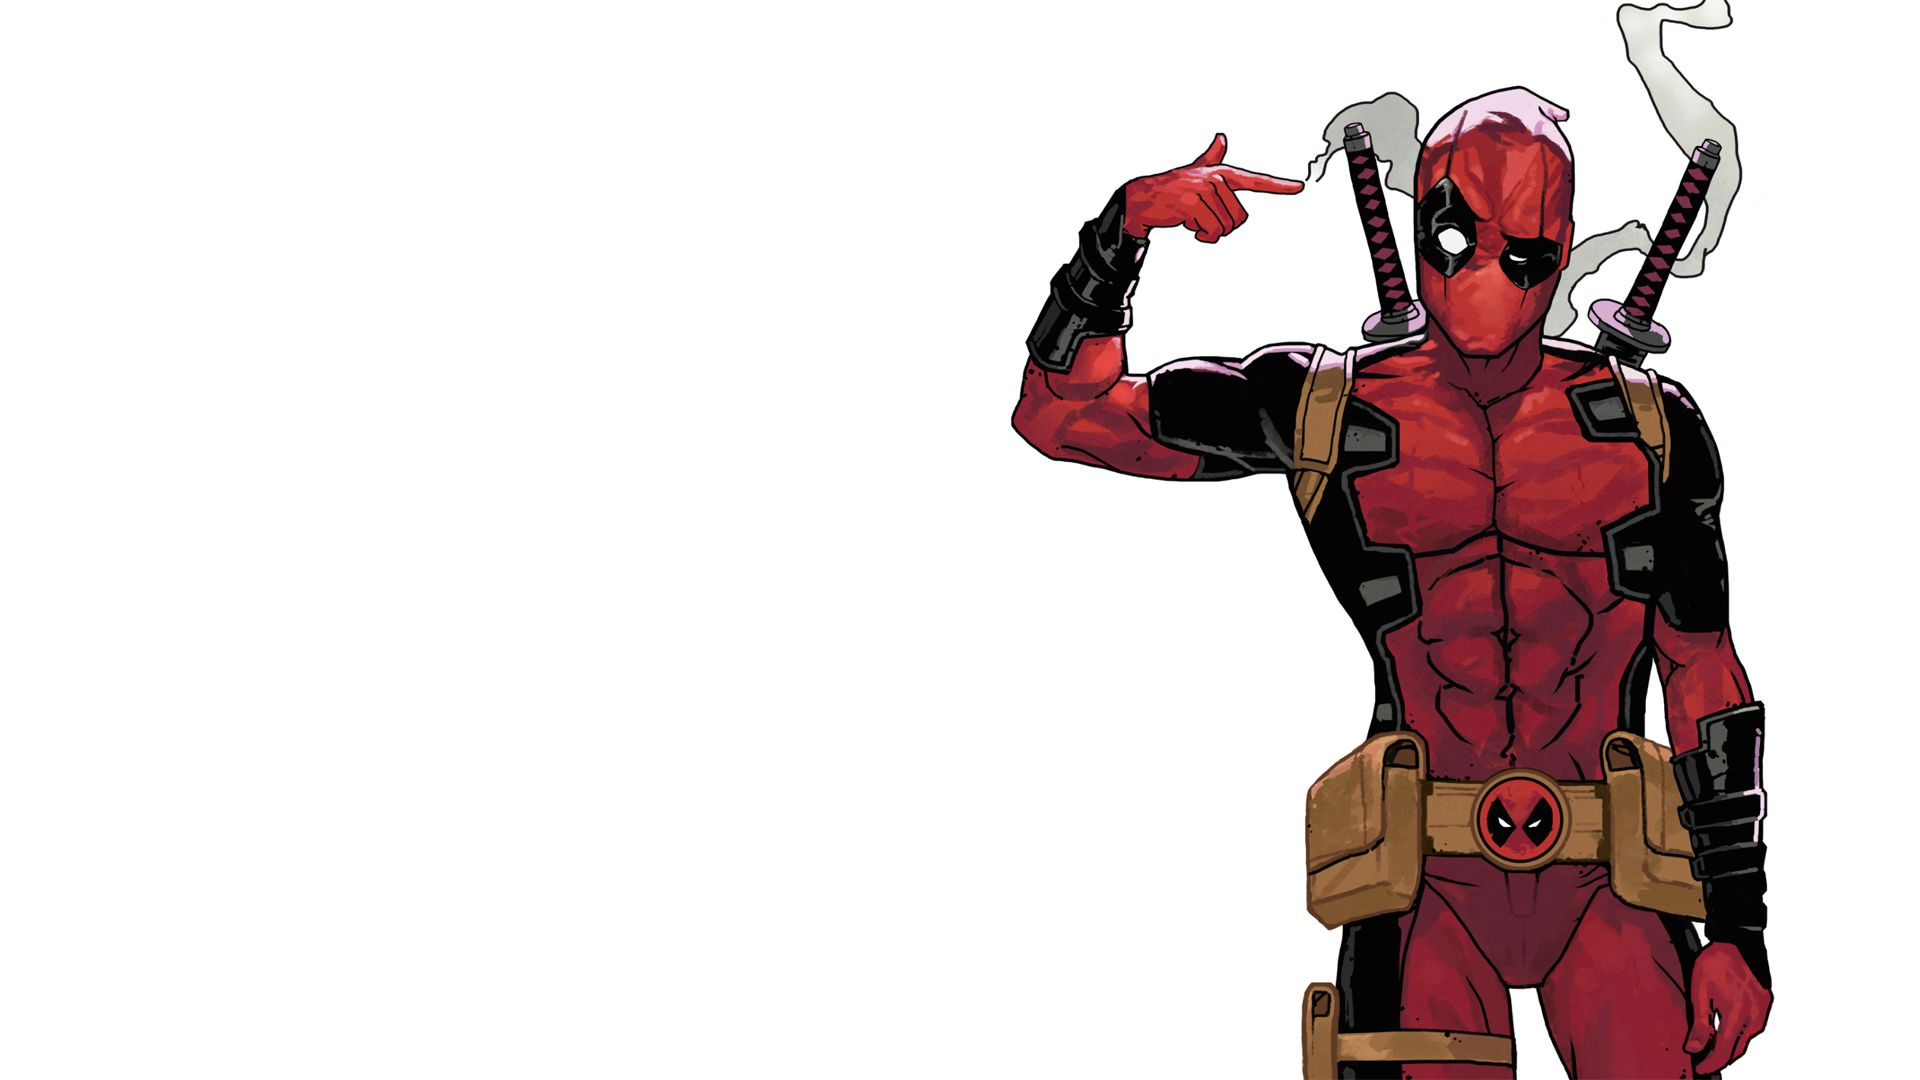 deadpool wallpapers hd resolution for desktop wallpaper 1920 x 1080